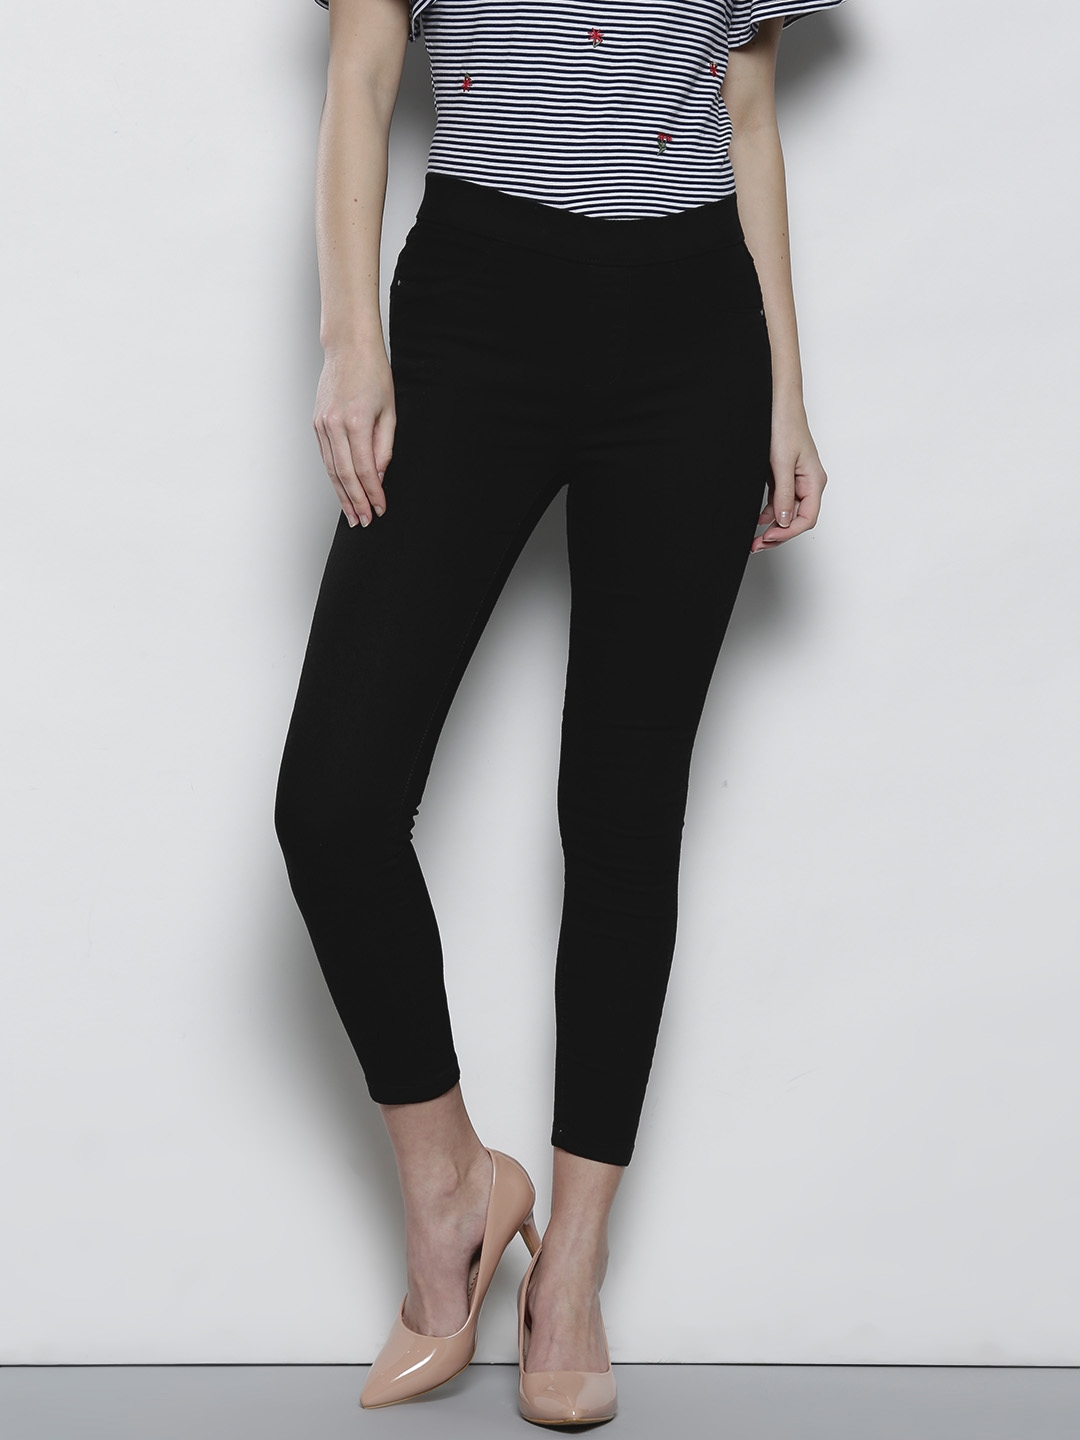 4e6fc34e7aa20 Buy DOROTHY PERKINS Black Ankle Length Jeggings - Jeggings for Women ...